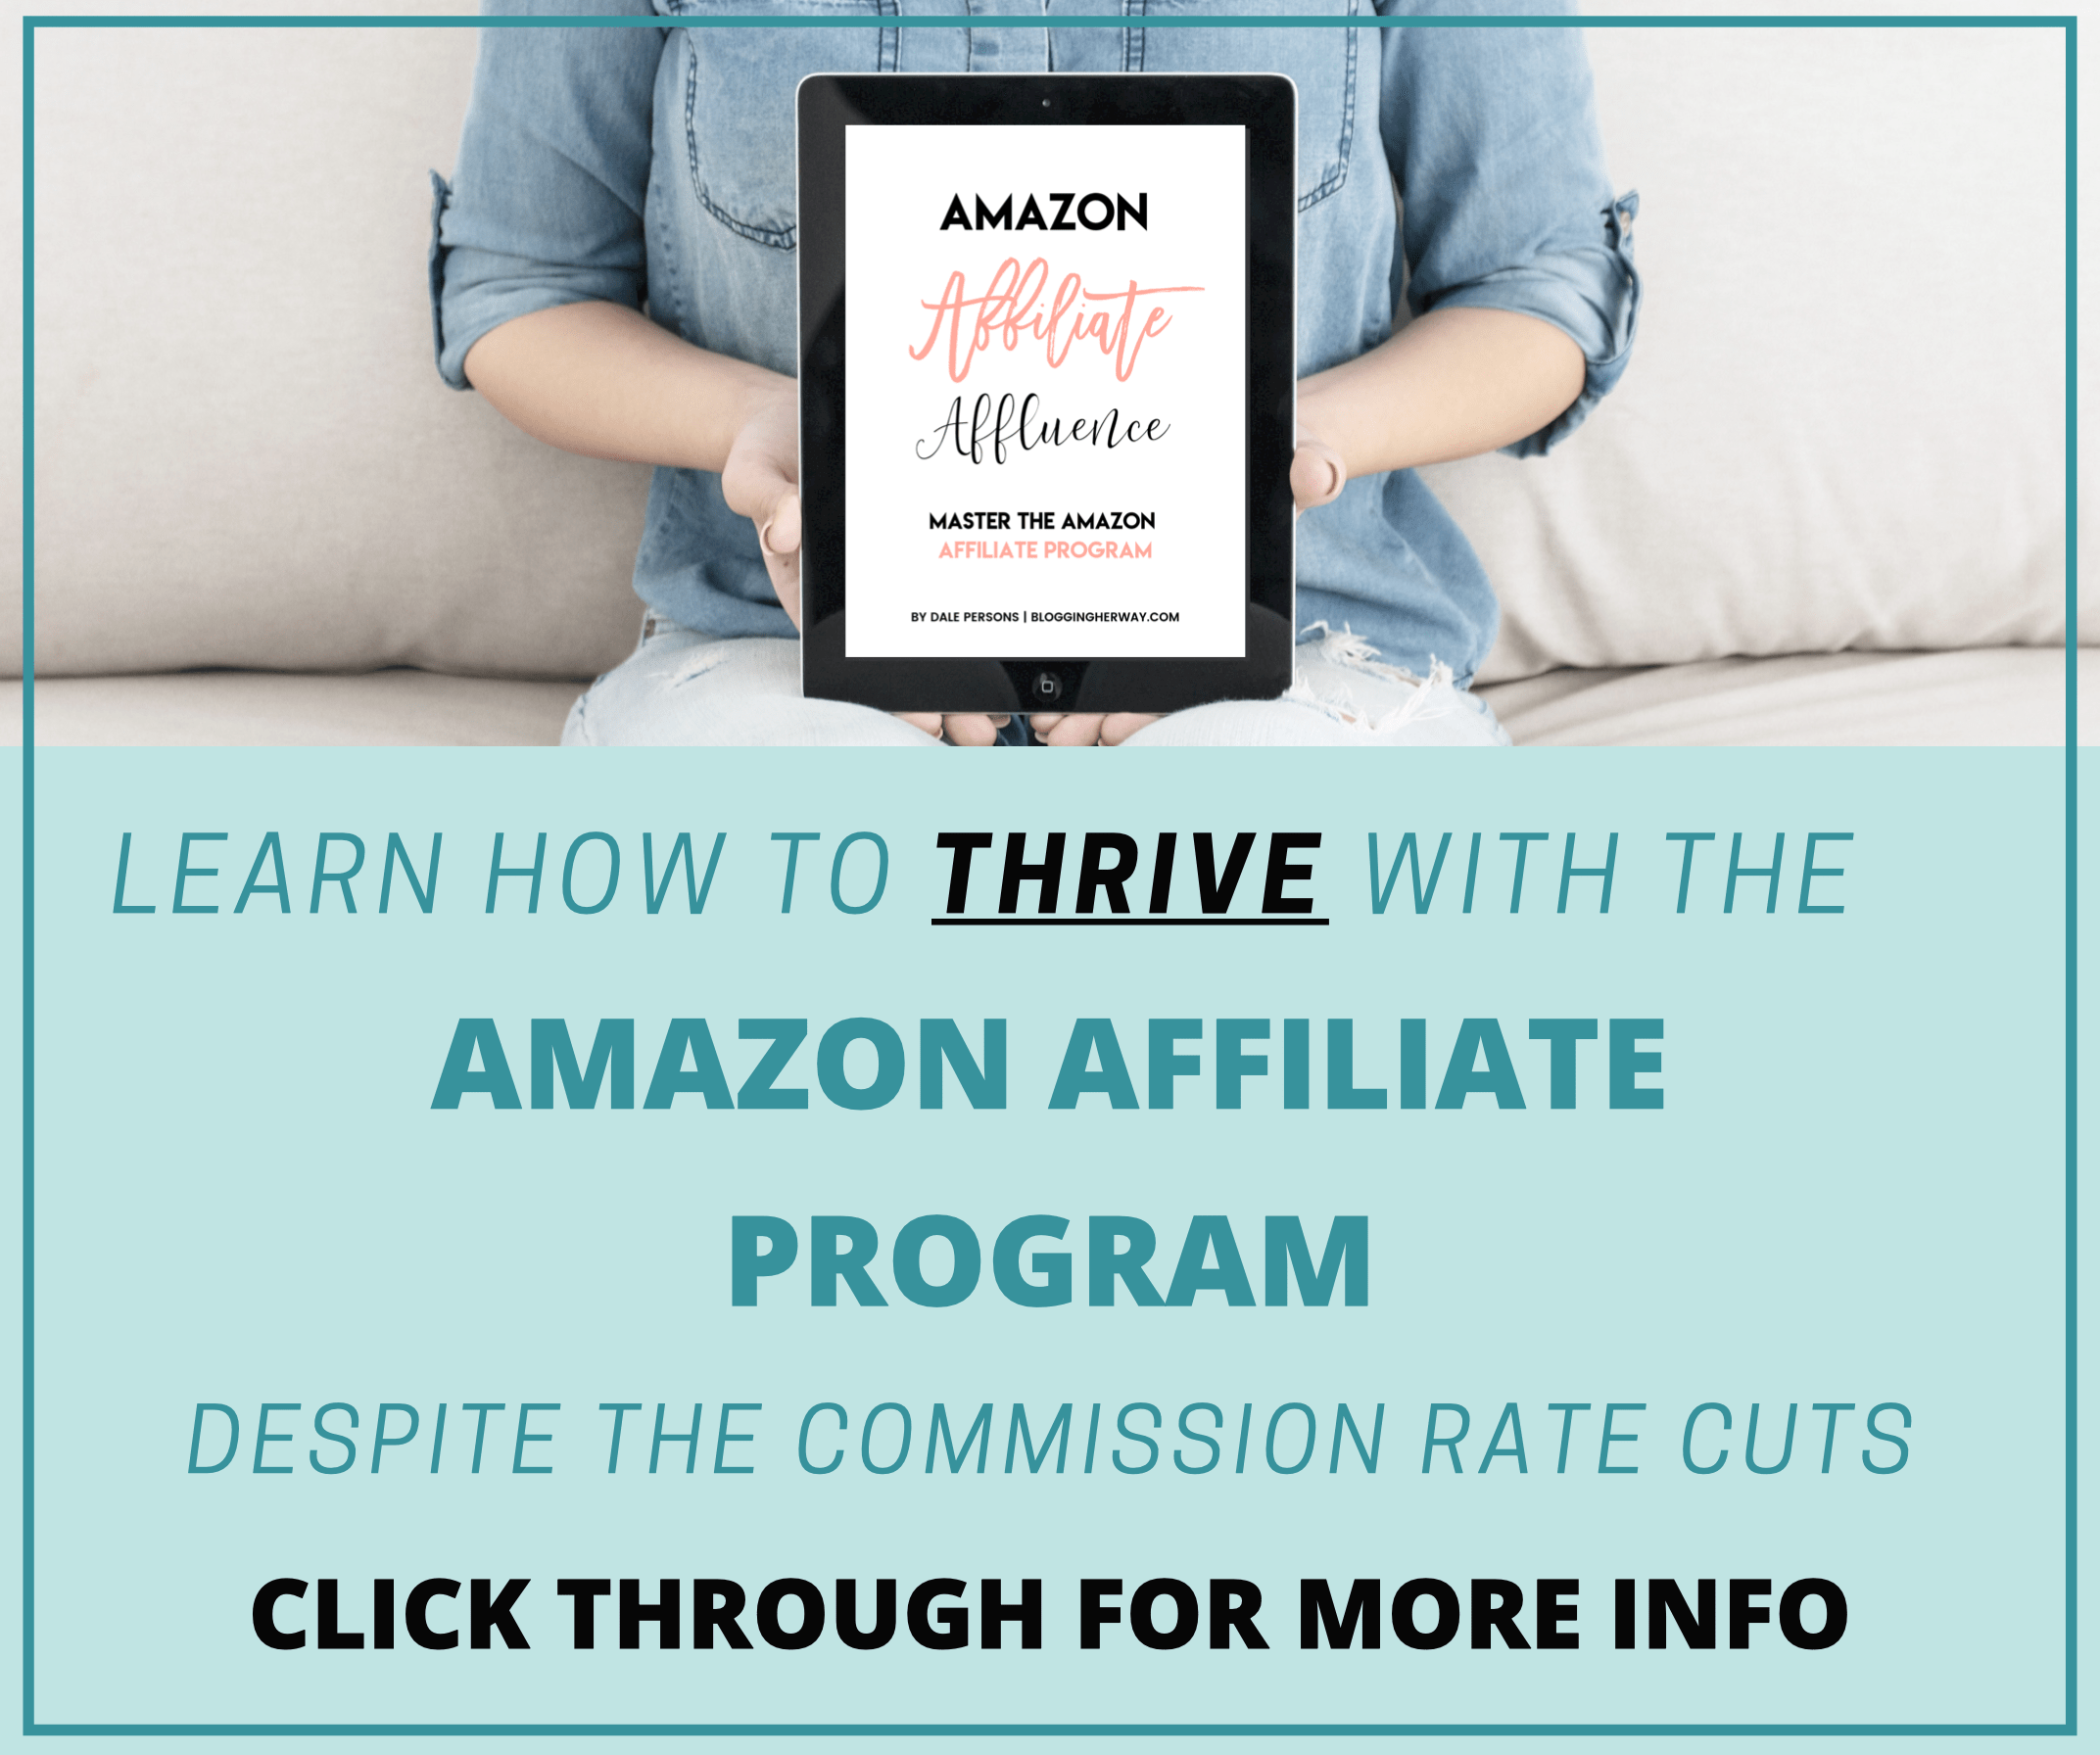 Learn how to thrive with the Amazon Affiliate Program despite the commission rate cuts